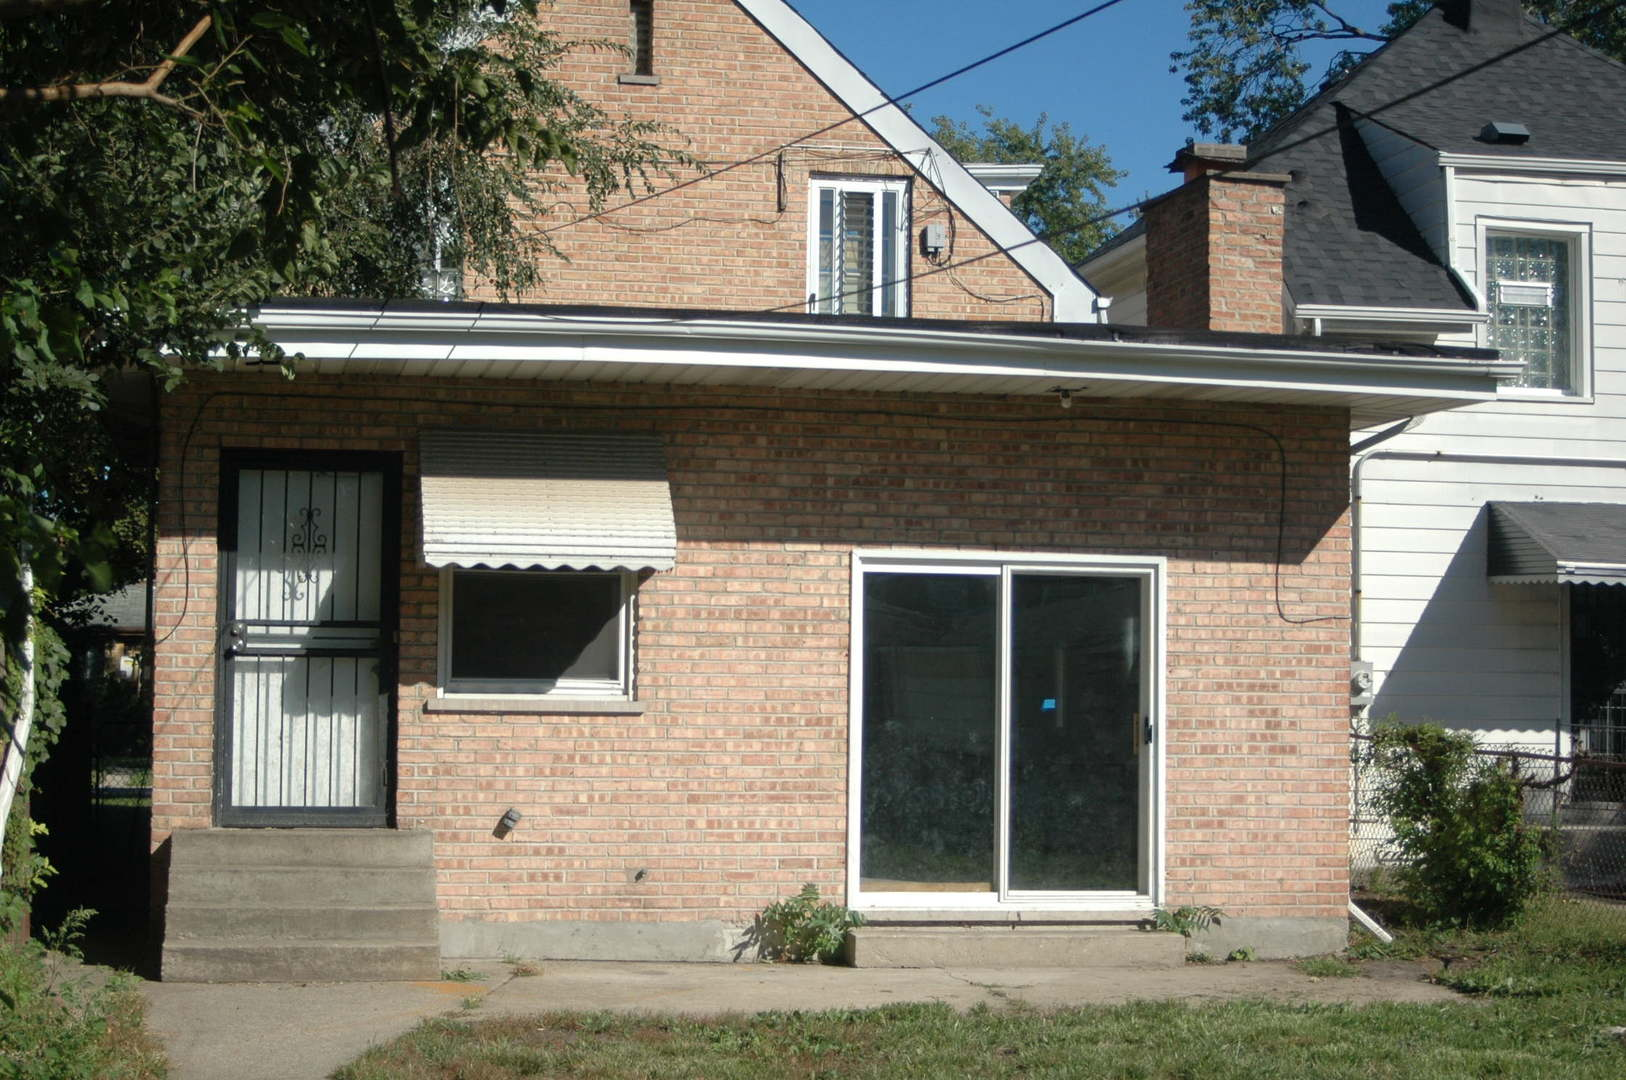 8730 South INDIANA, CHICAGO, Illinois, 60619